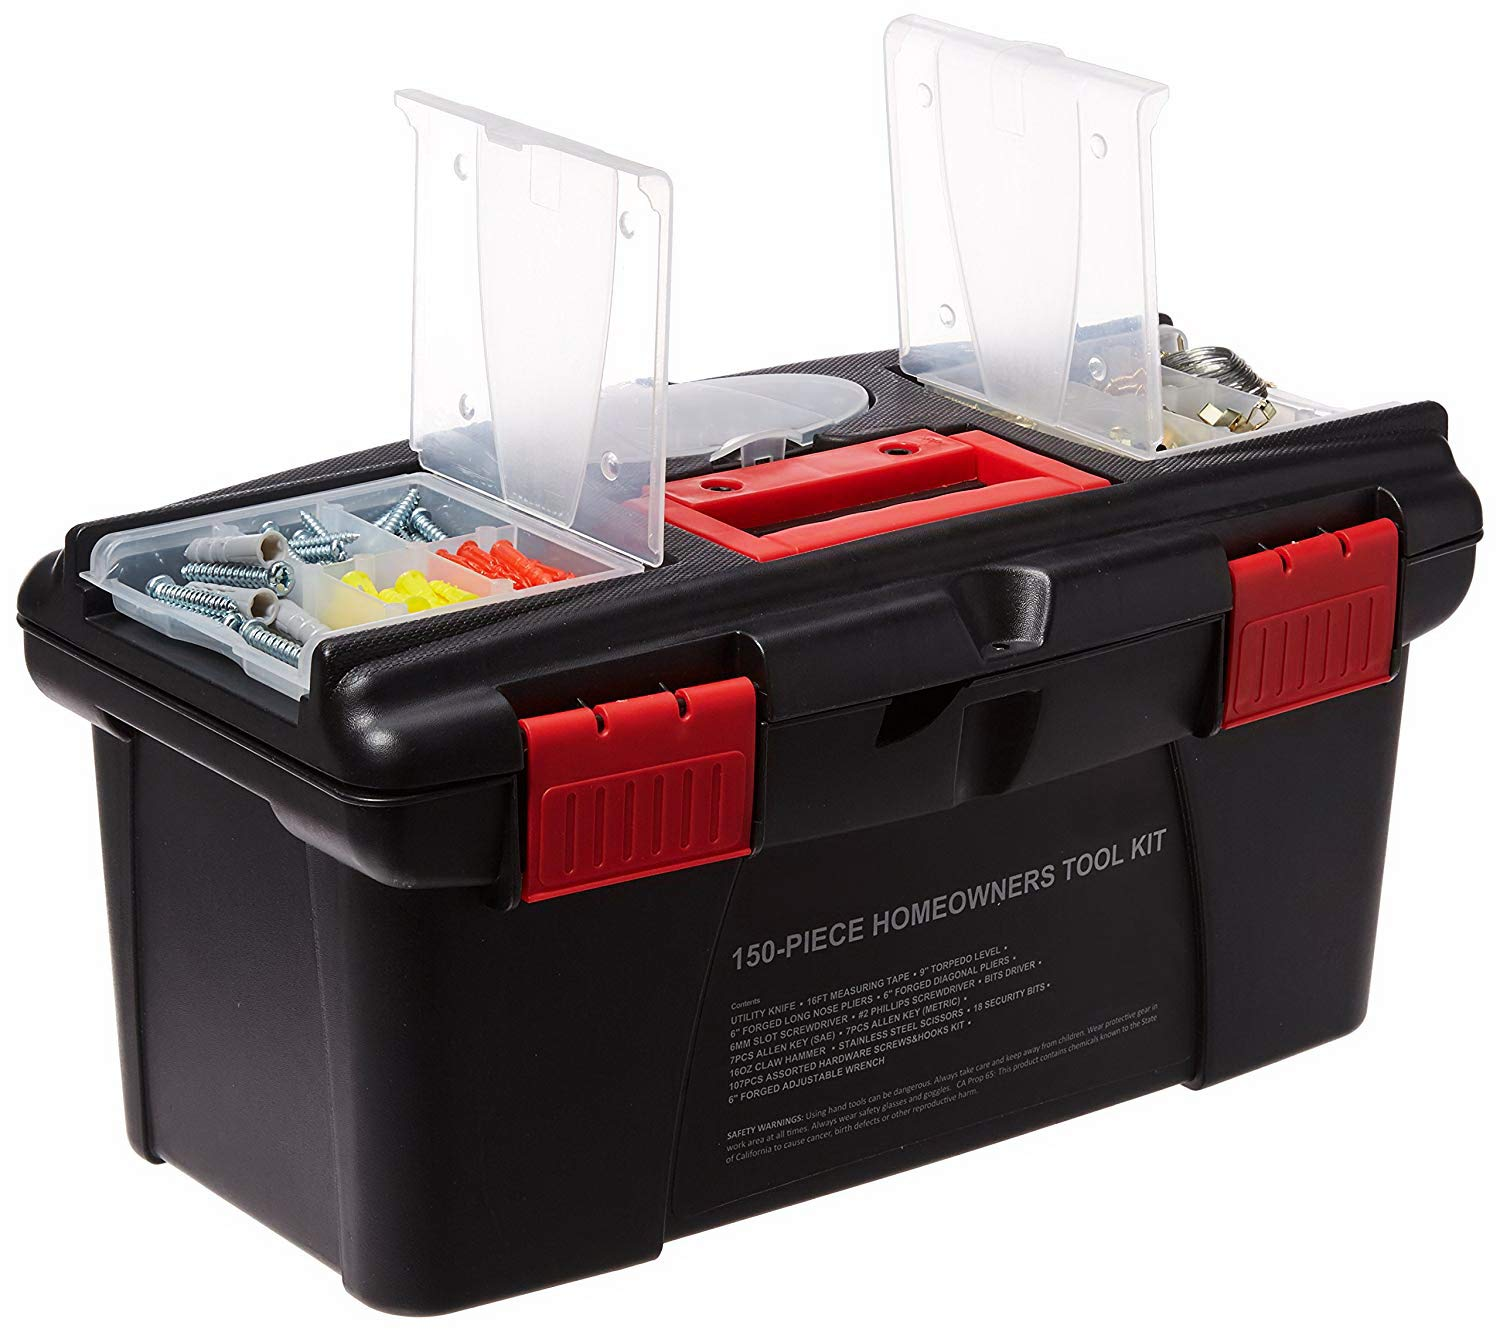 Tool Kit. Best Portable Big Basic Starter Professional Household DIY Hand Mixed Repair Set W/Plastic Storage Box For Home, Garage, Office For Men&Women. Includes Screwdriver, Wrench, Pliers, Etc.